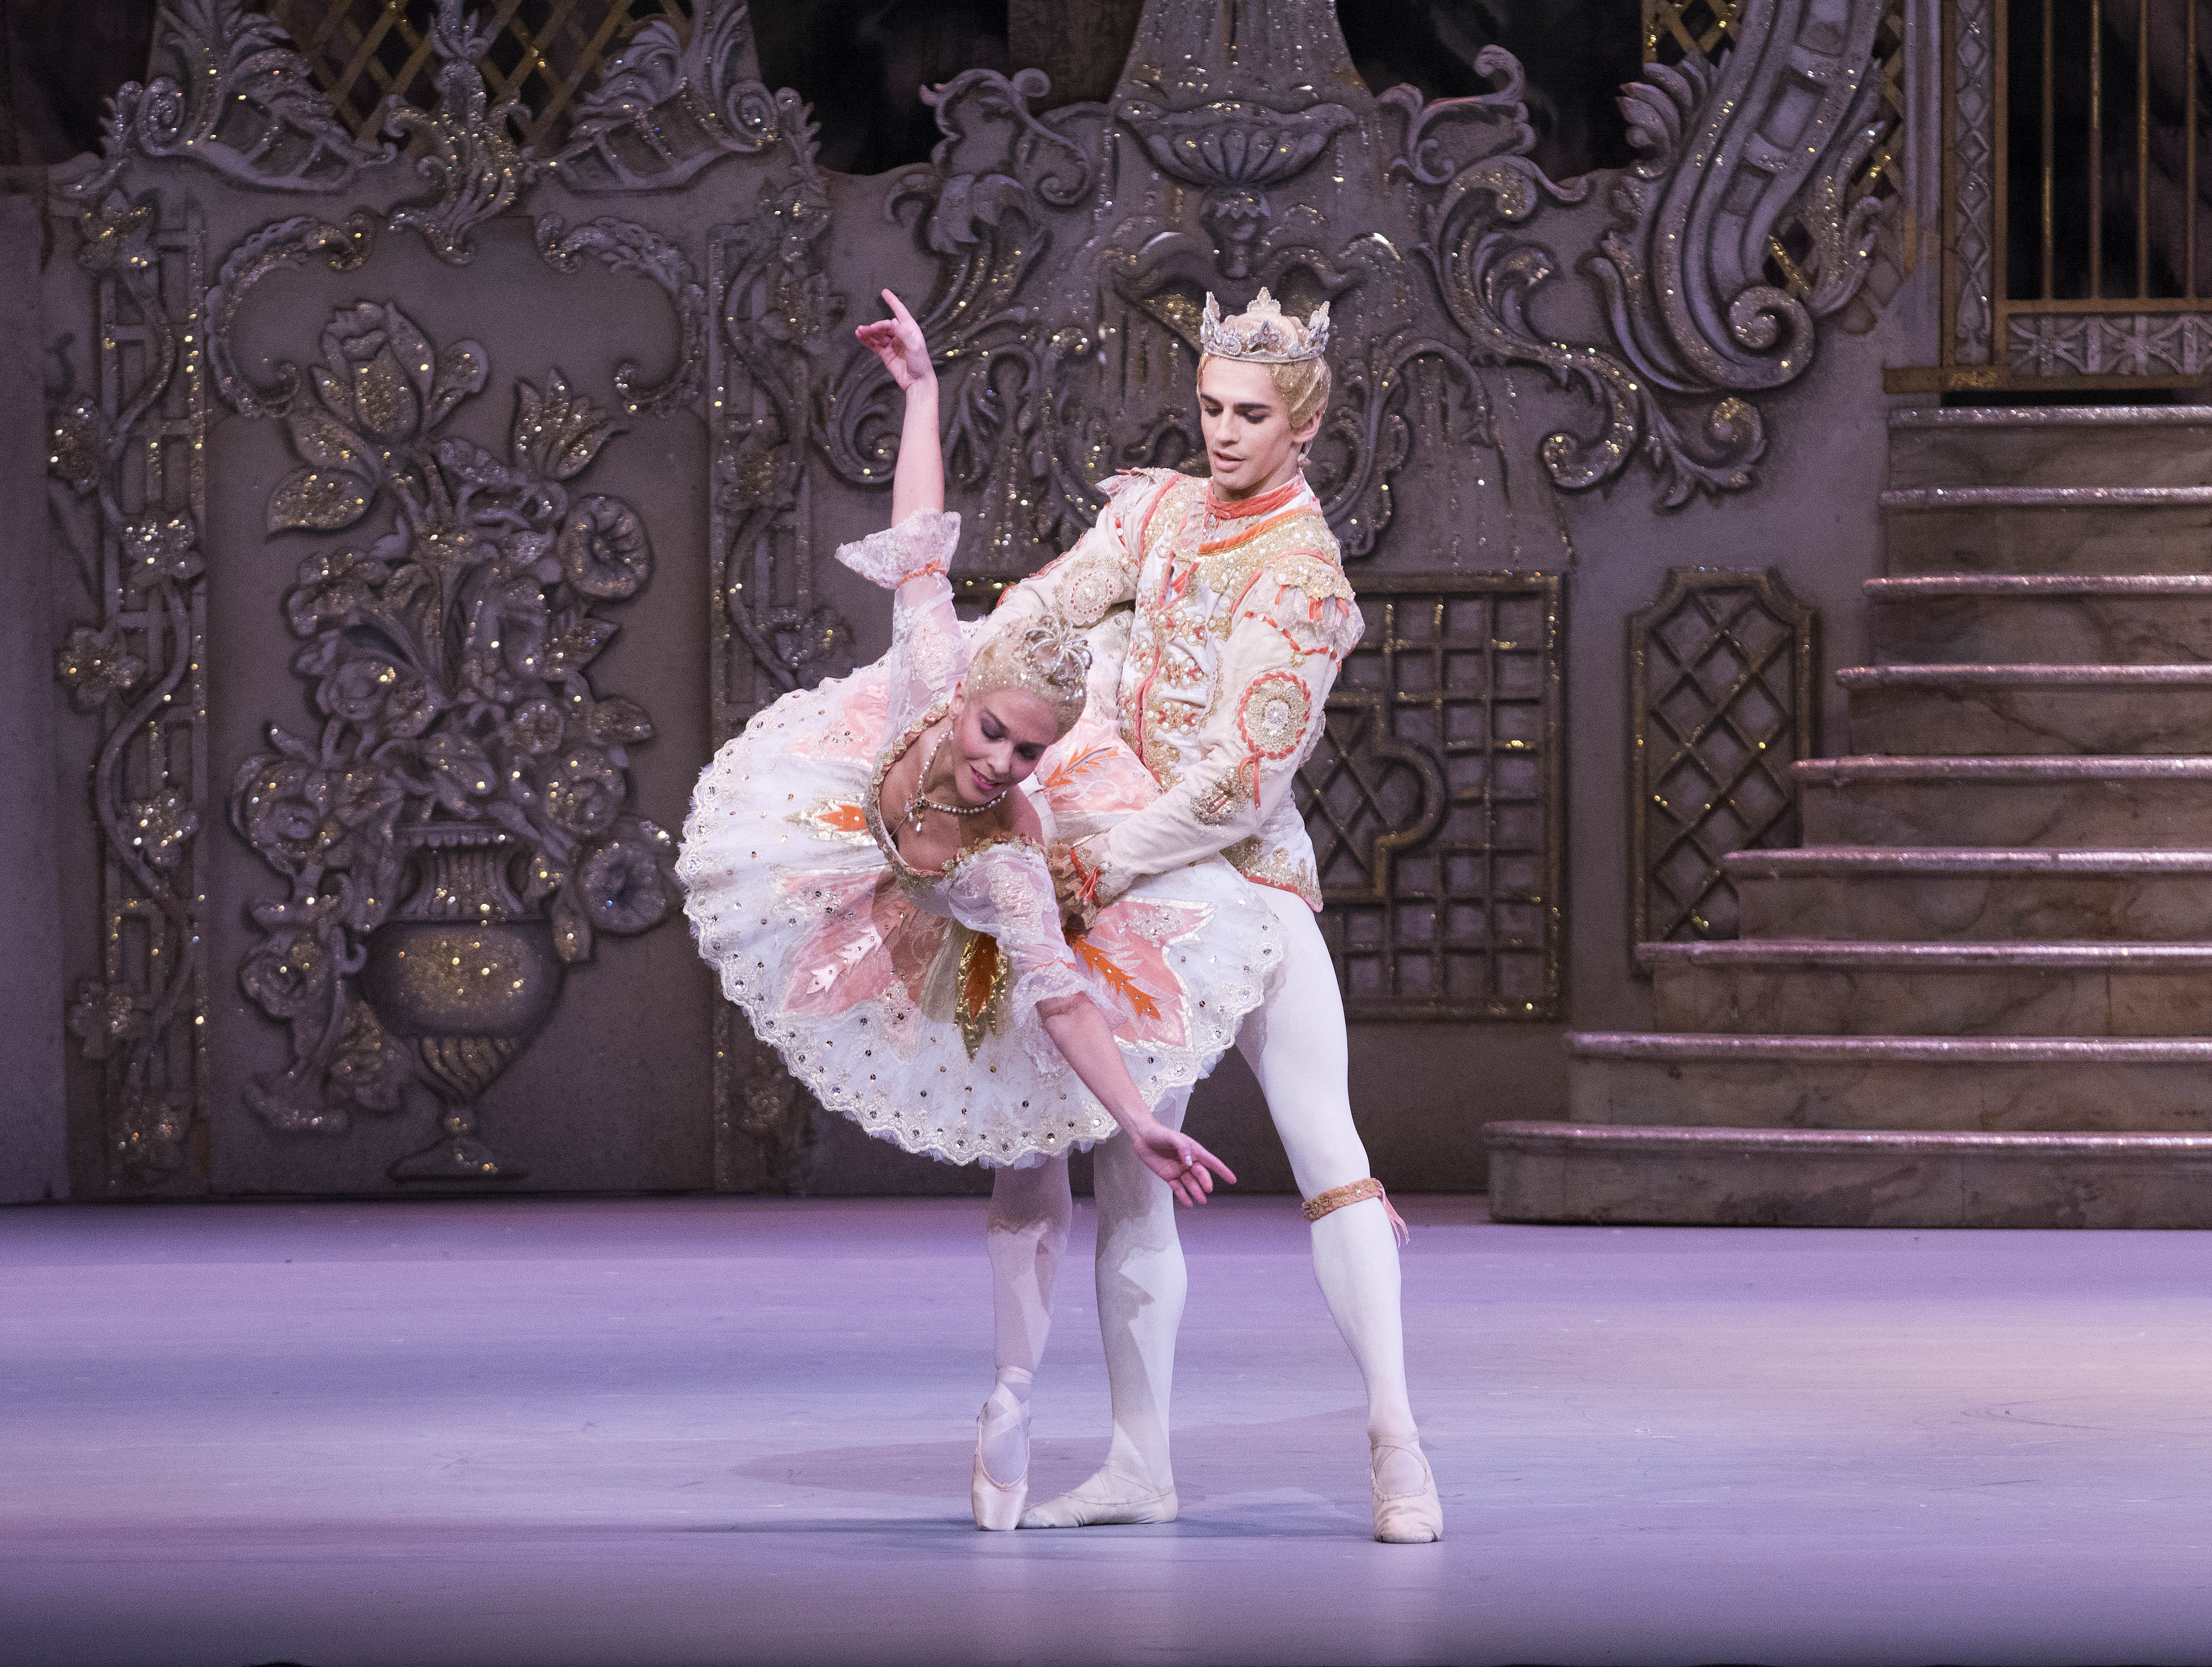 Laura Morera and Federico Bonelli (as The Sugar Plum Fairy and her Cavalier) in 'The Nutcracker' (photo by Tristram Kenton, ROH, 2013) 2